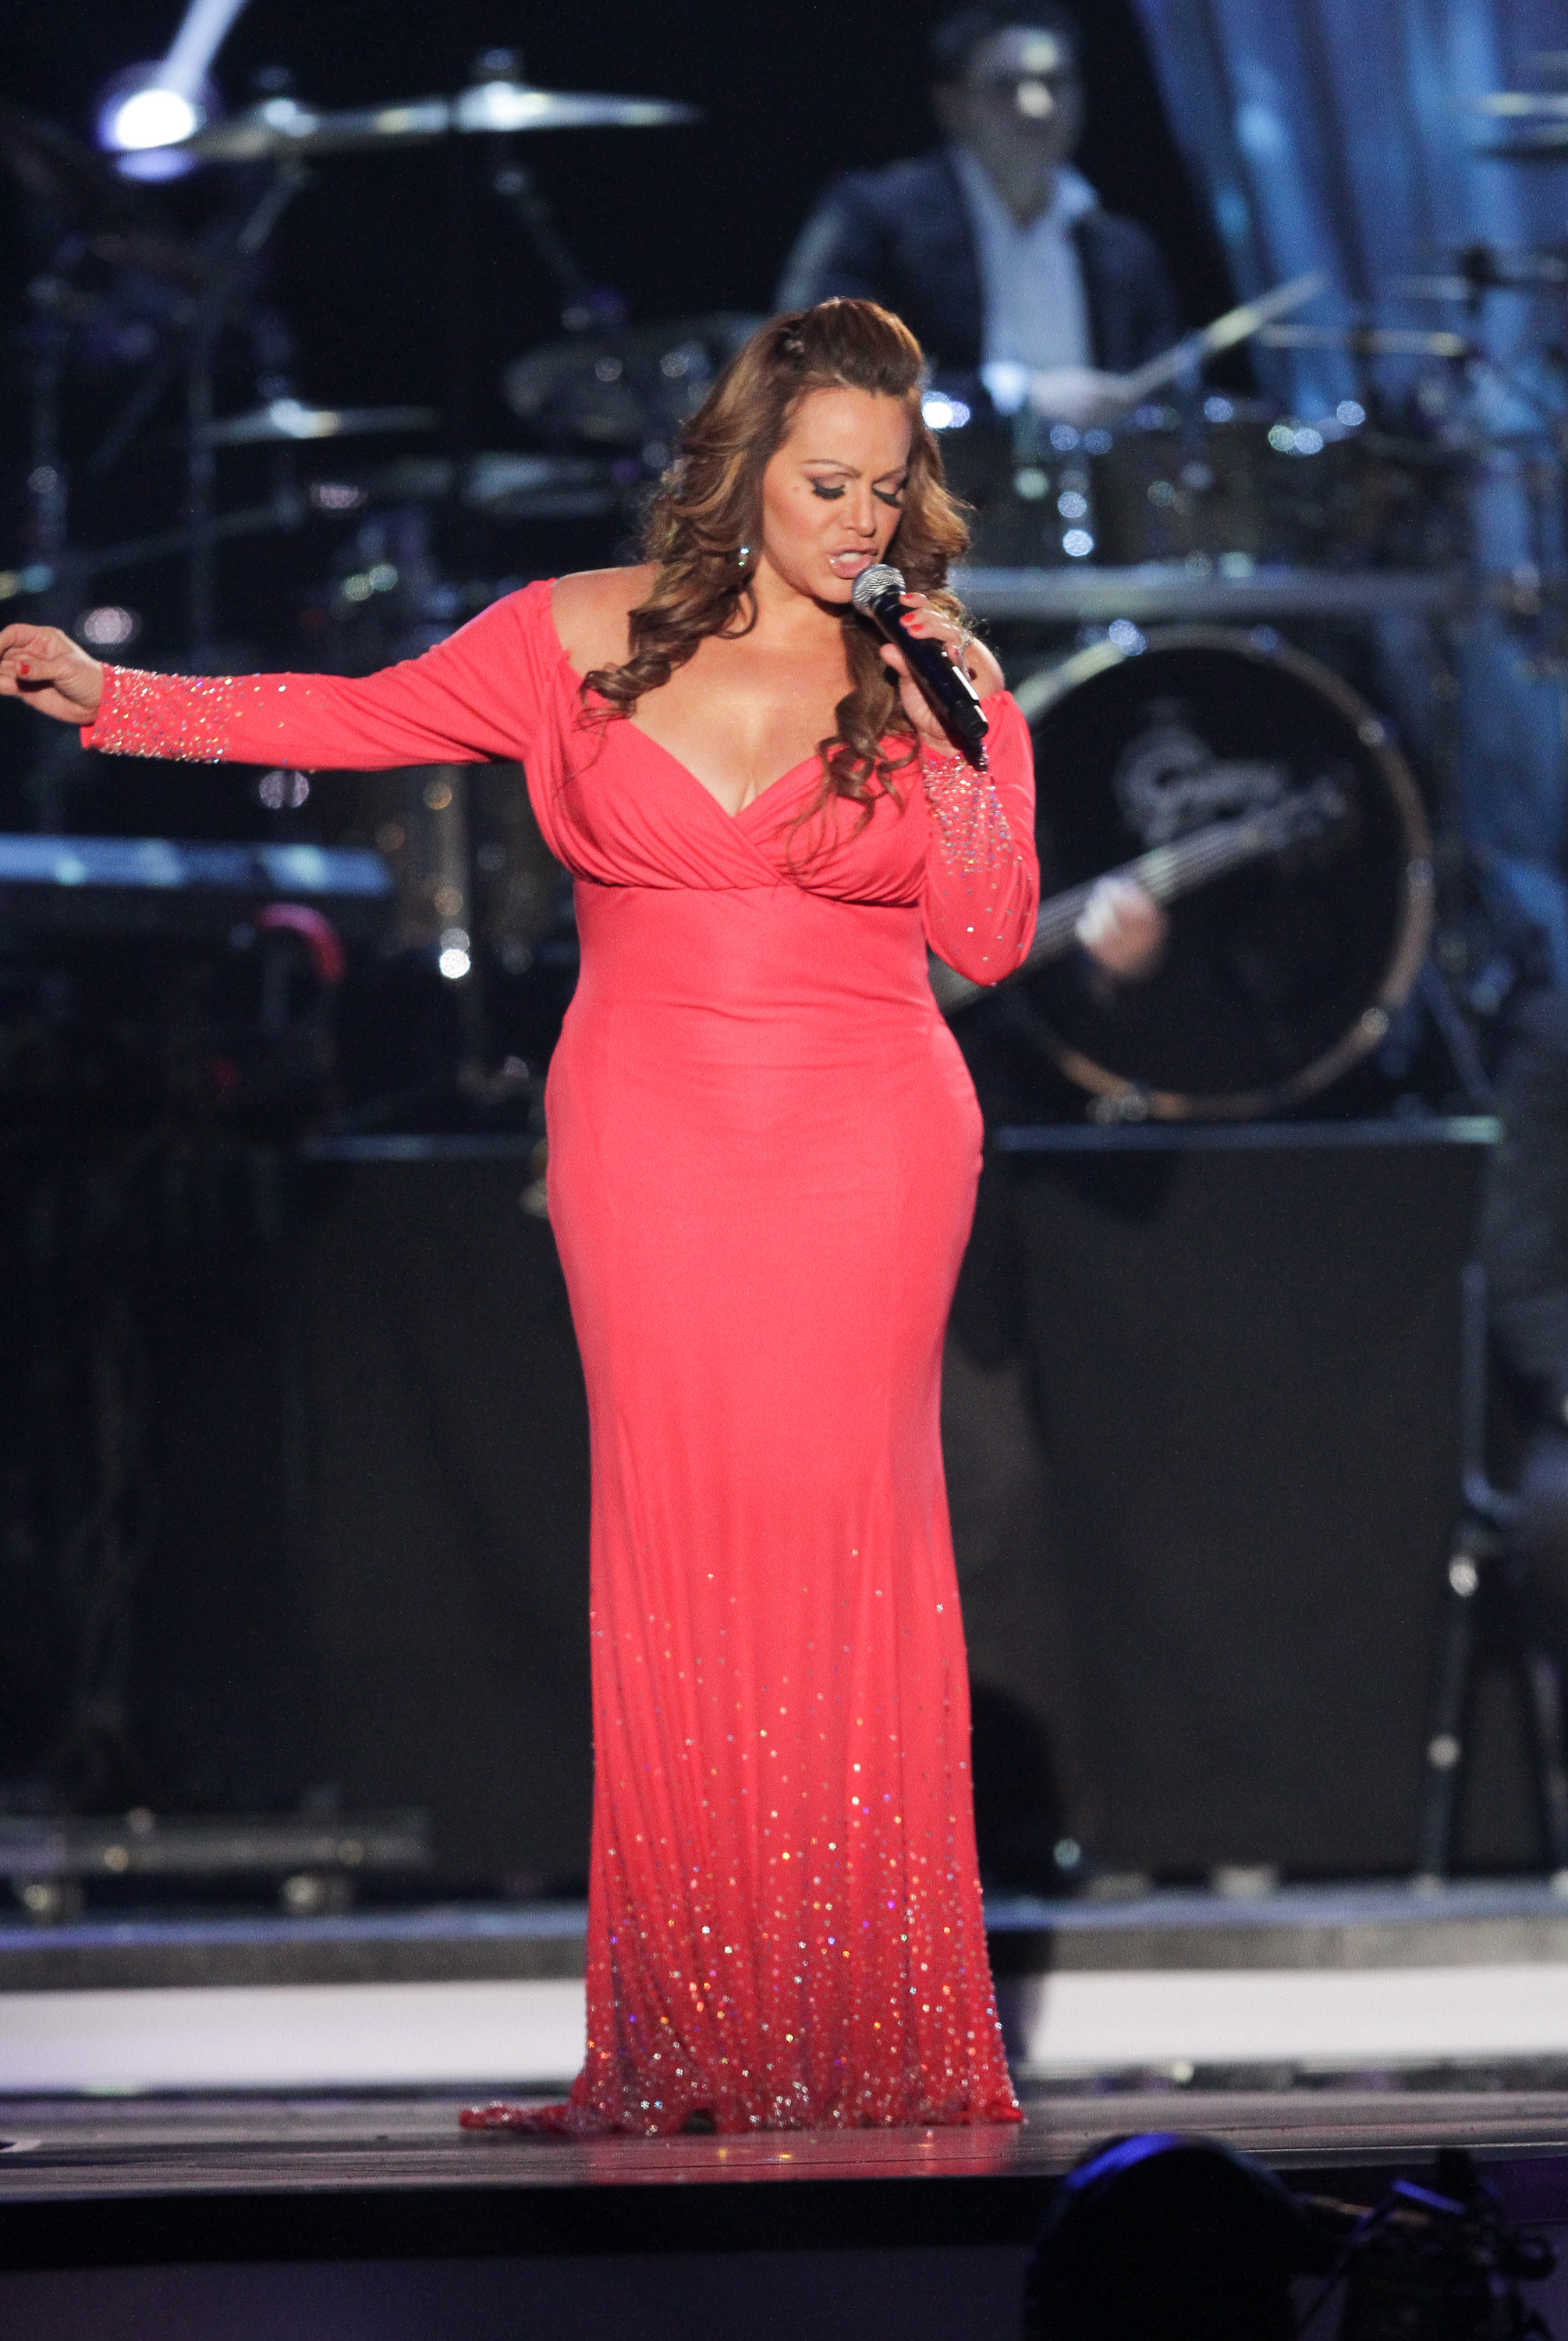 MIAMI, FL - APRIL 26: Jenni Rivera performs with Shure Axient Wireless during Billboard Latin Music Awards 2012 at Bank United Center on April 26, 2012 in Miami, Florida. Photo by John Parra/Getty Images)